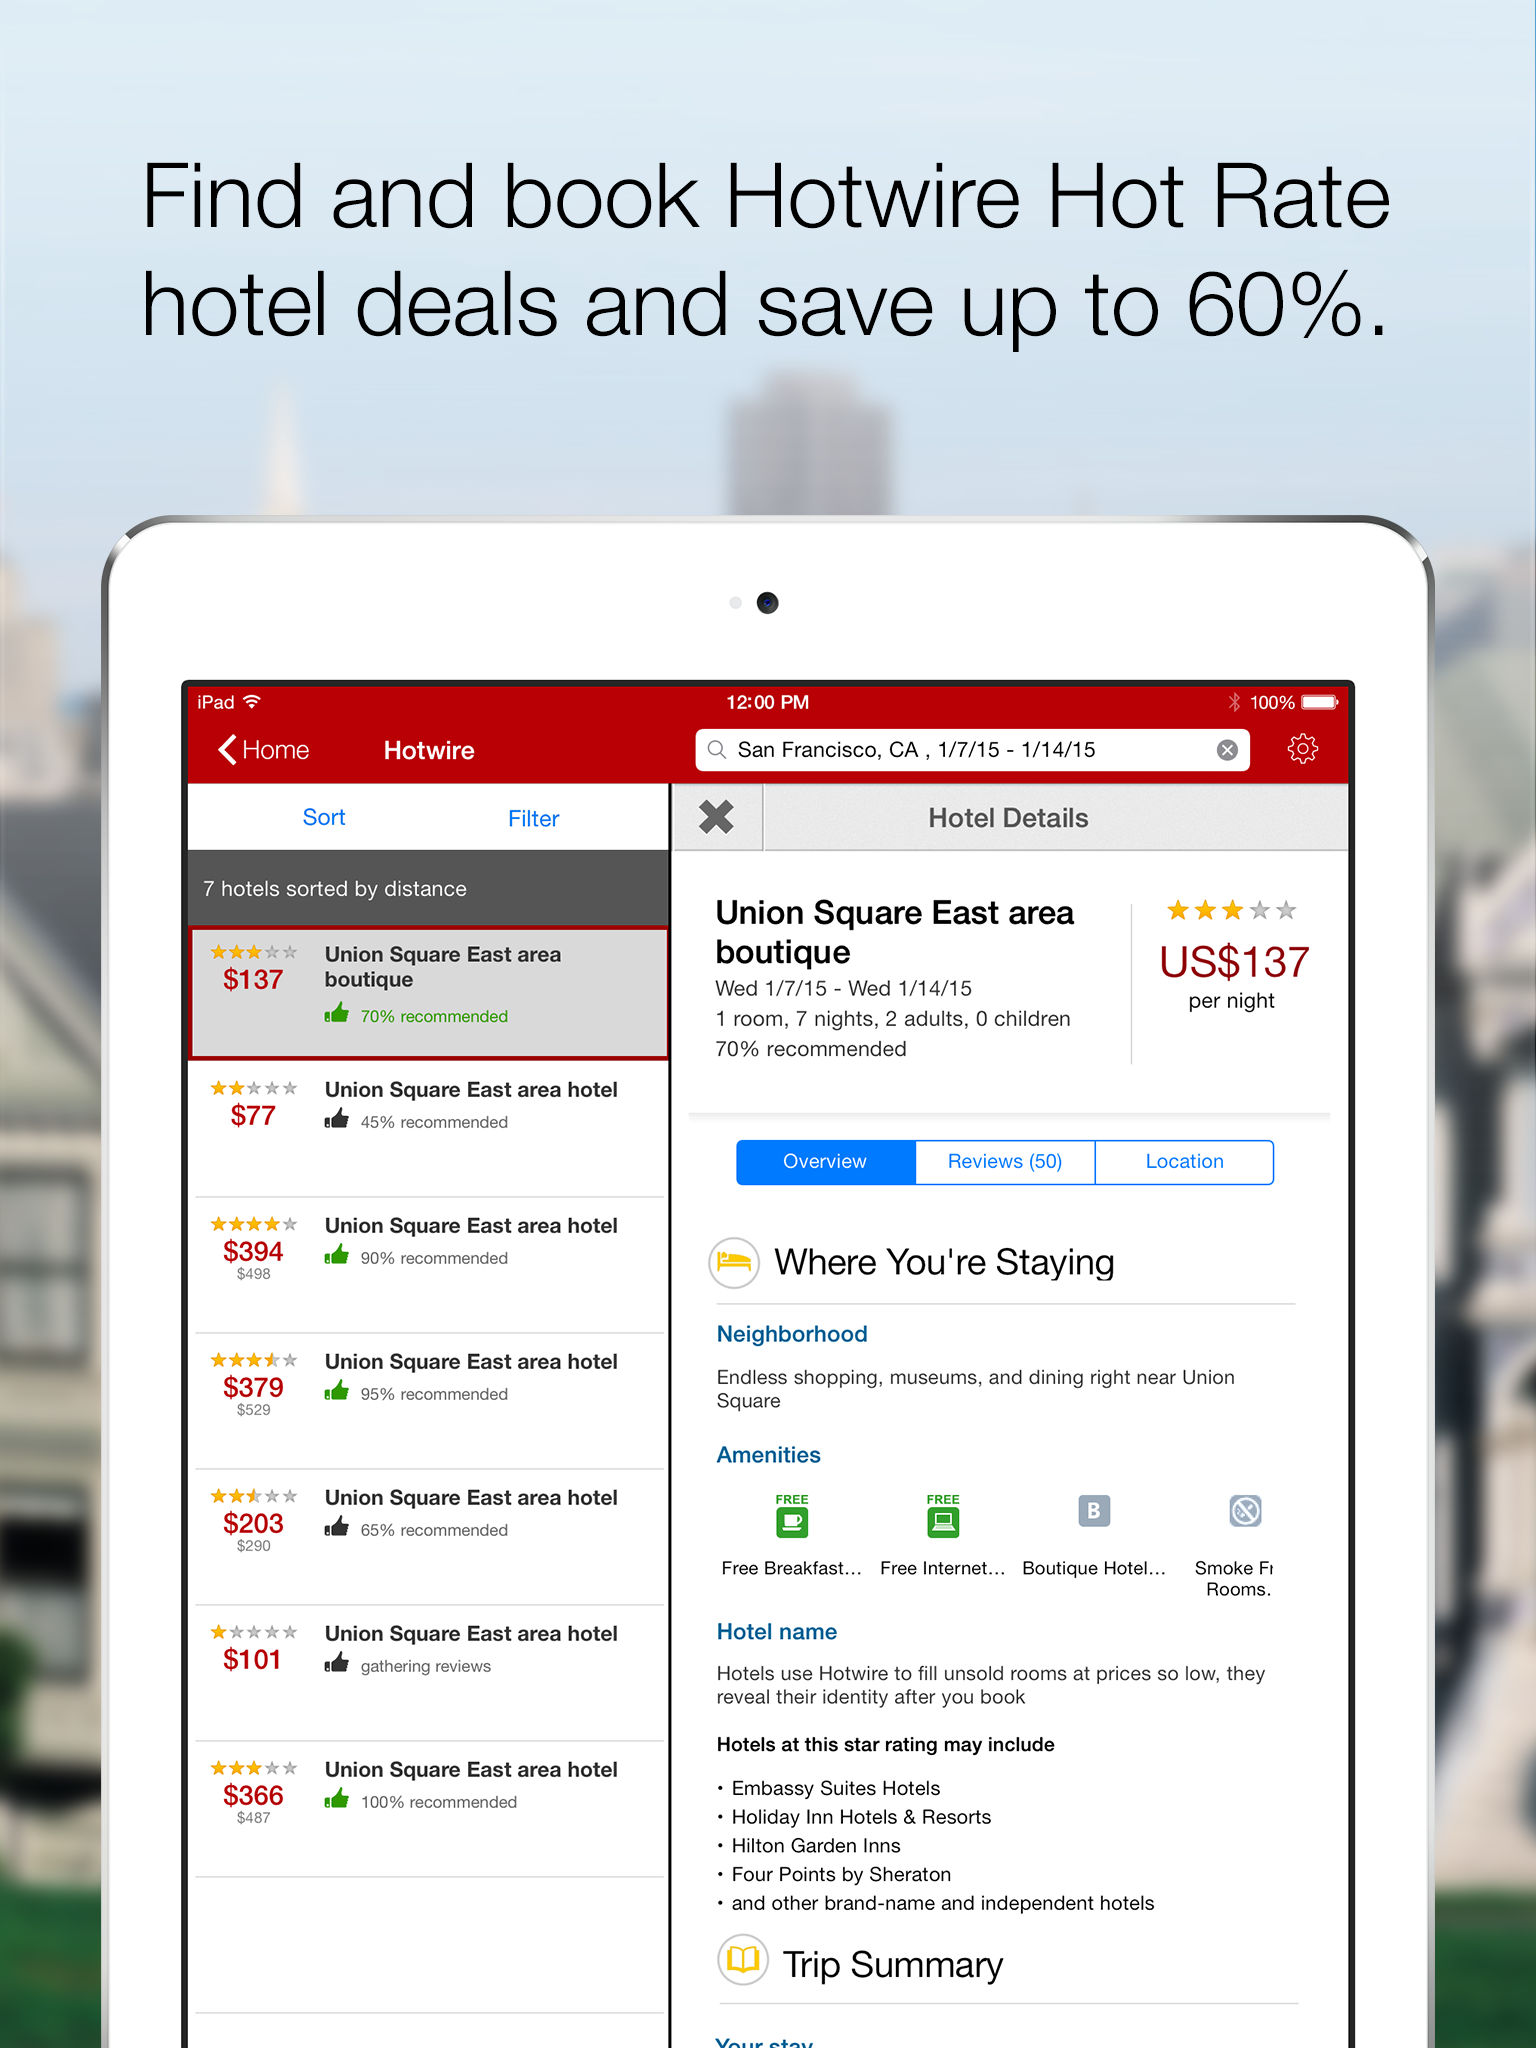 hotwire travel deals on hotel rooms car rentals app ranking and